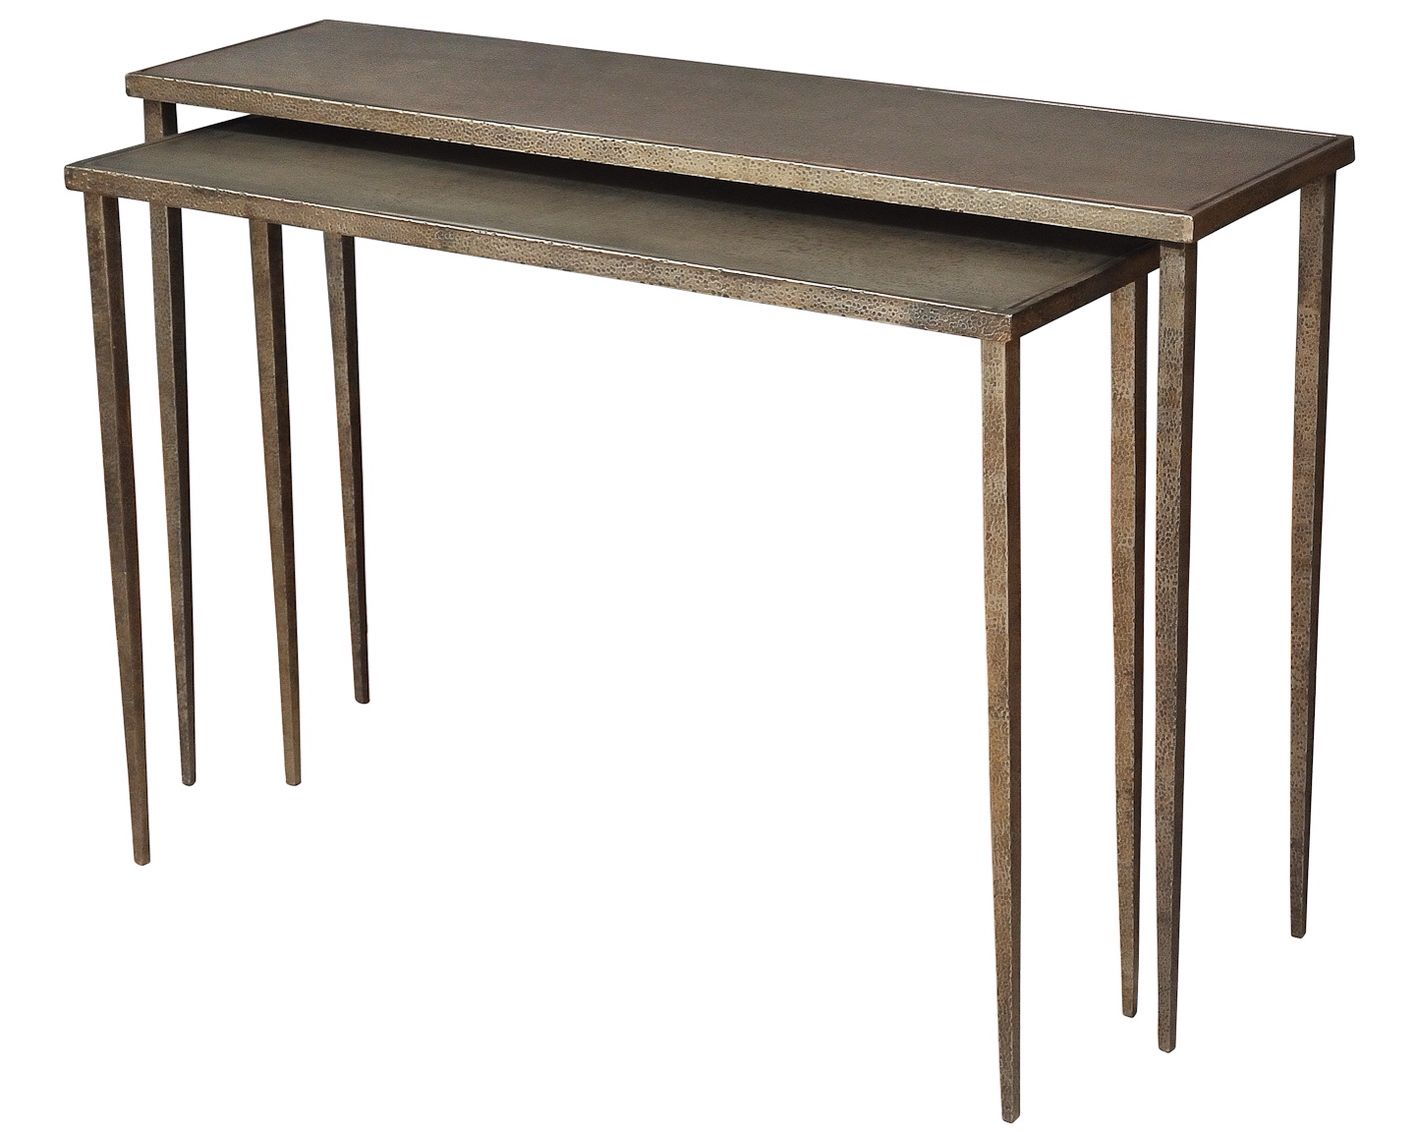 Hammered Sheet Metal Console Tables   My Designs   Pinterest Within Parsons Black Marble Top & Dark Steel Base 48x16 Console Tables (View 4 of 30)